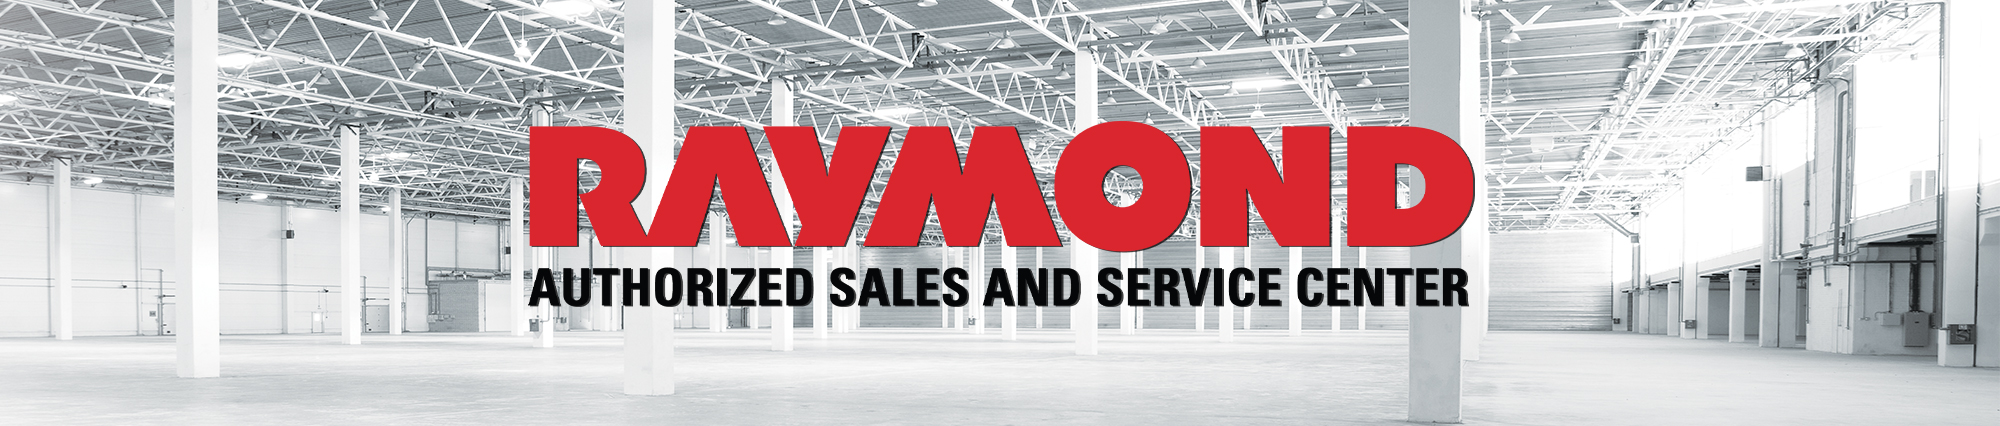 Pengate Handling Systems of Pittsburgh, Pennsylvania: a Raymond Authorized Sales and Service Center